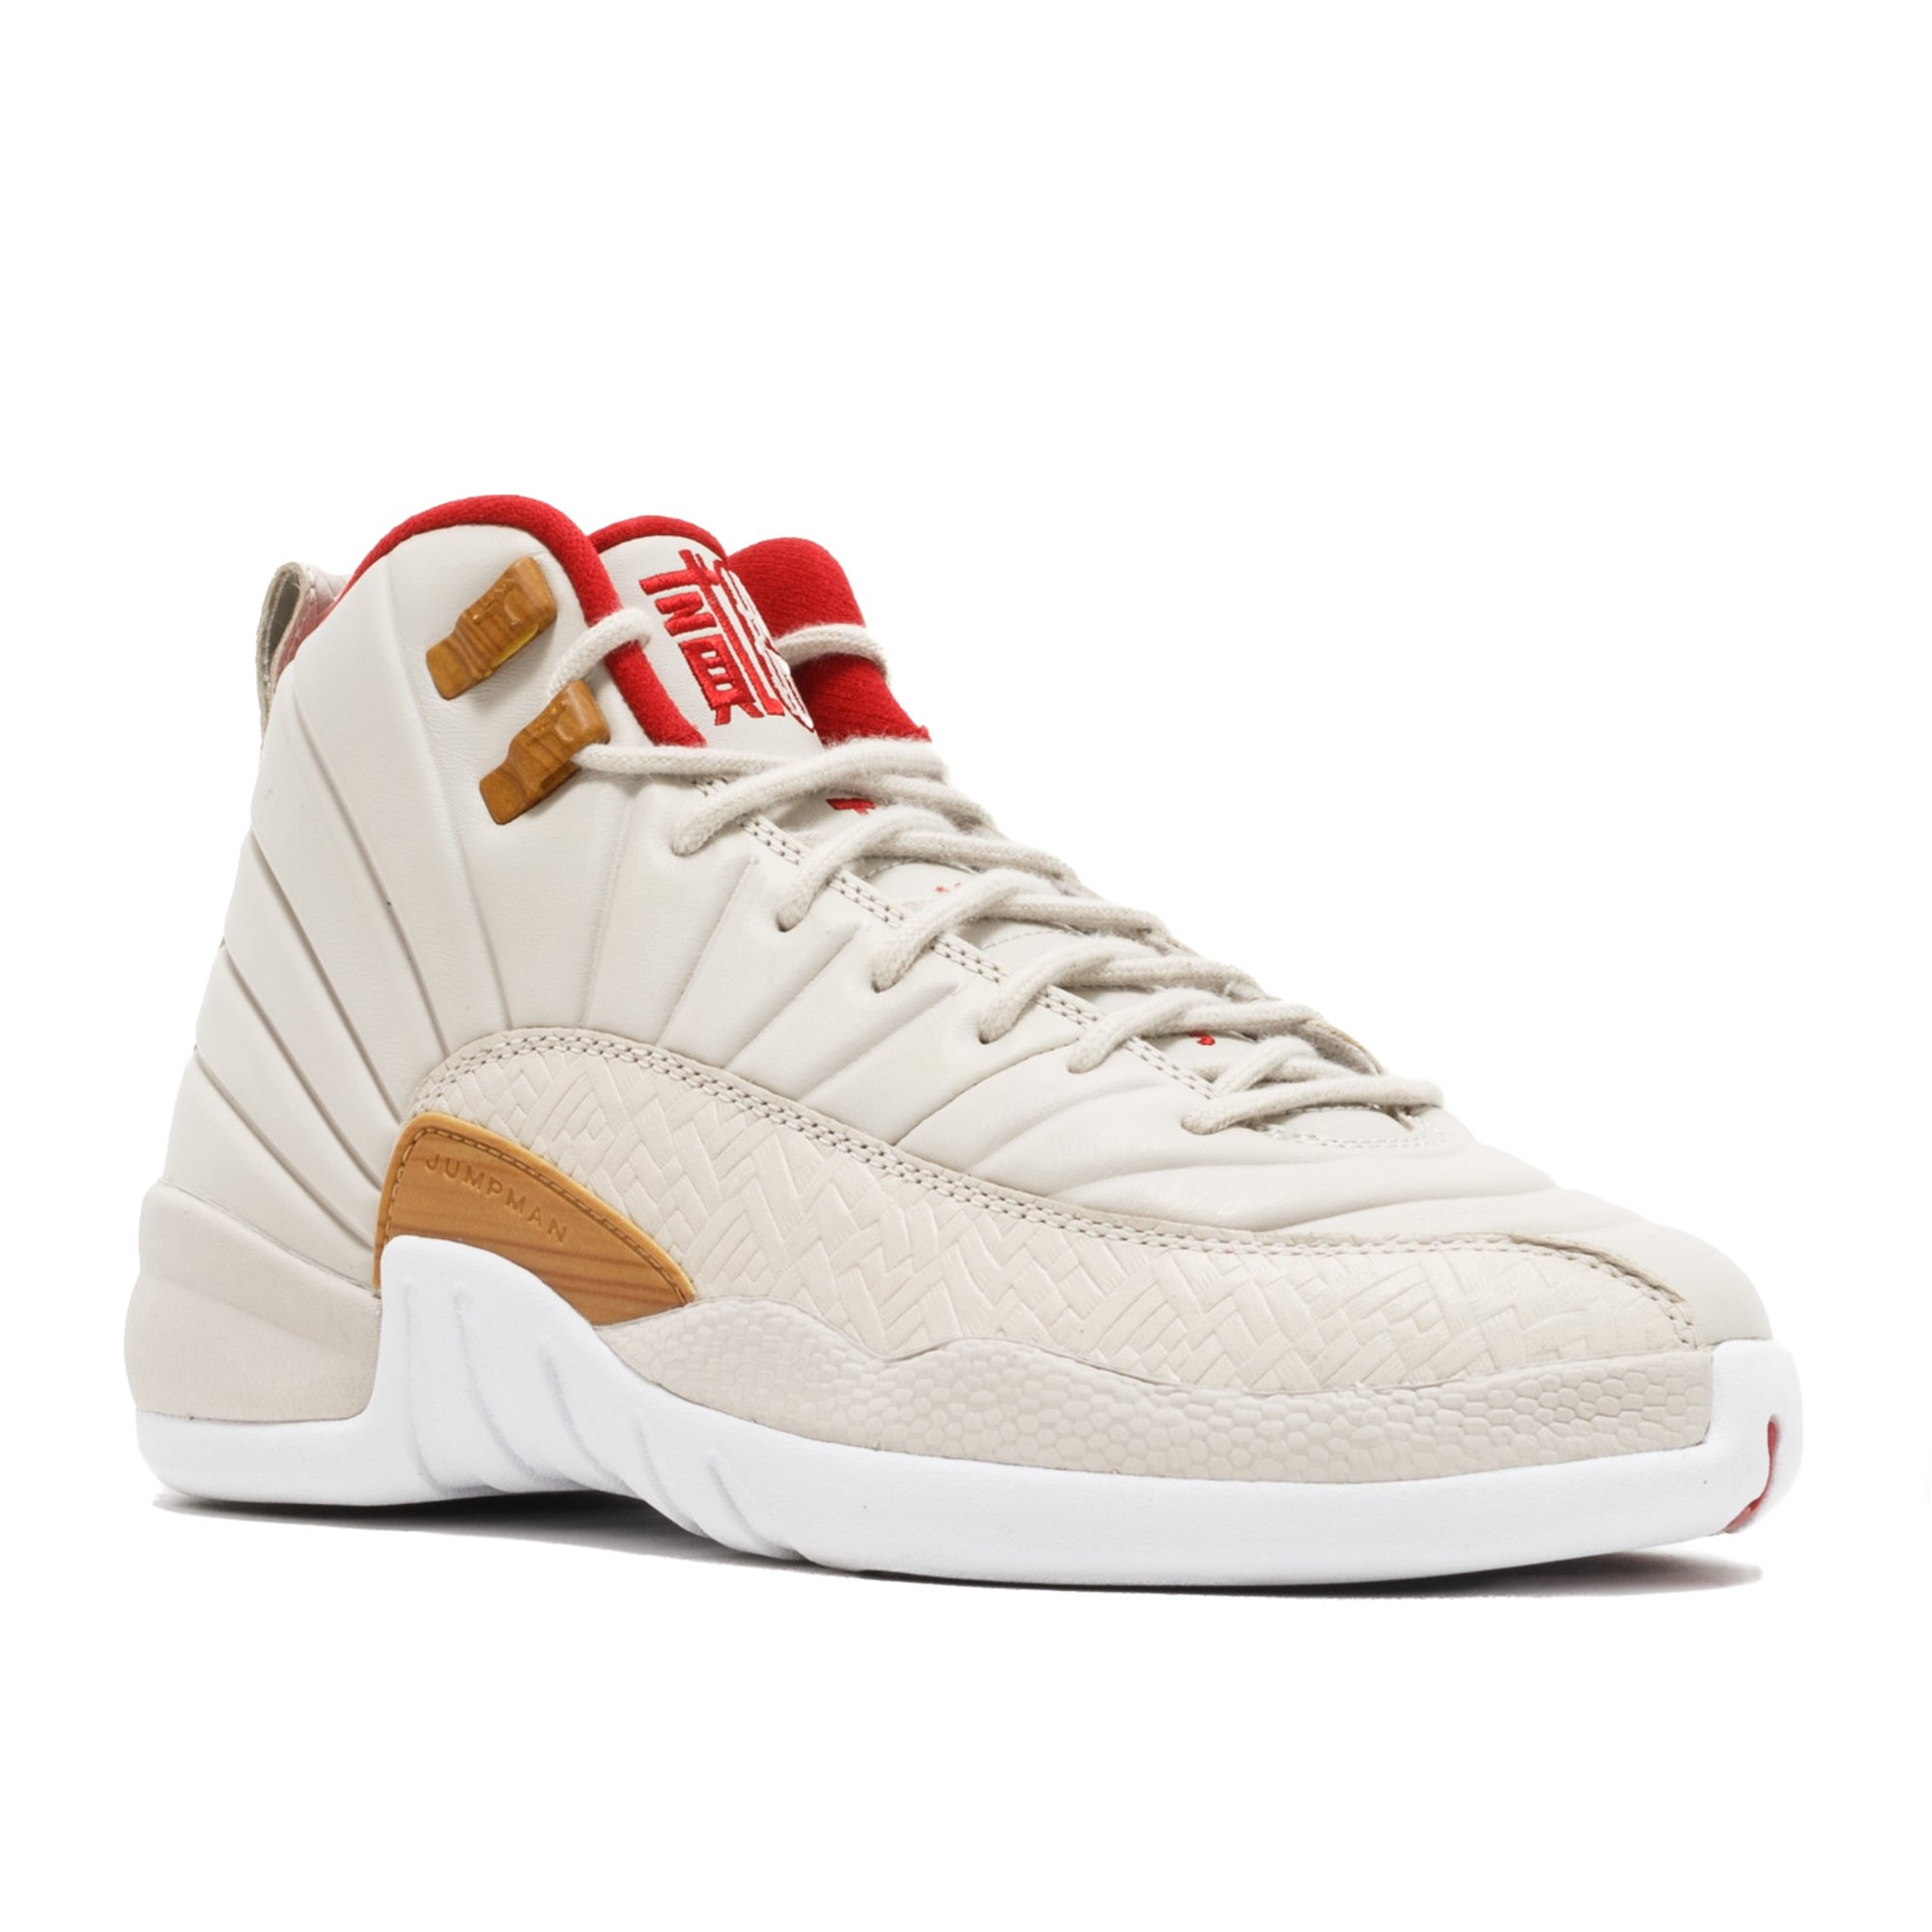 online store 541ae 79fd4 Air Jordan - Unisex - Air Jordan 12 Retro Cny 'Chinese New Year' -  881428-142 - Size 4